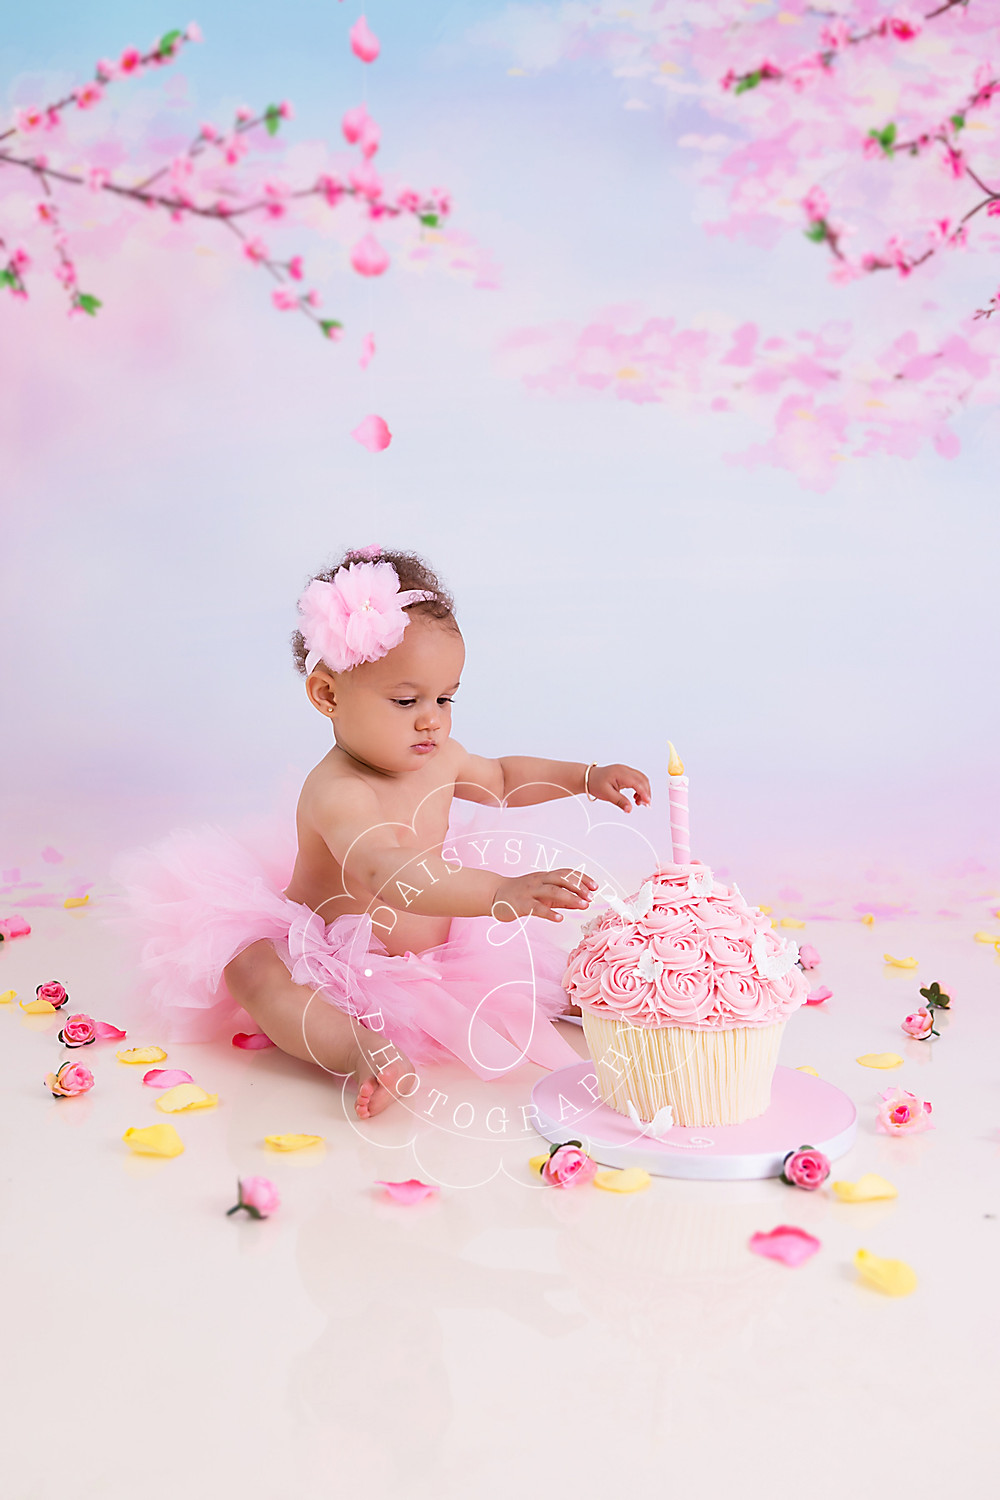 little baby girl dressed in a pink tutu is sitting in front of her giant cupcake surrounded by flowers and a cherry blossom backdrop